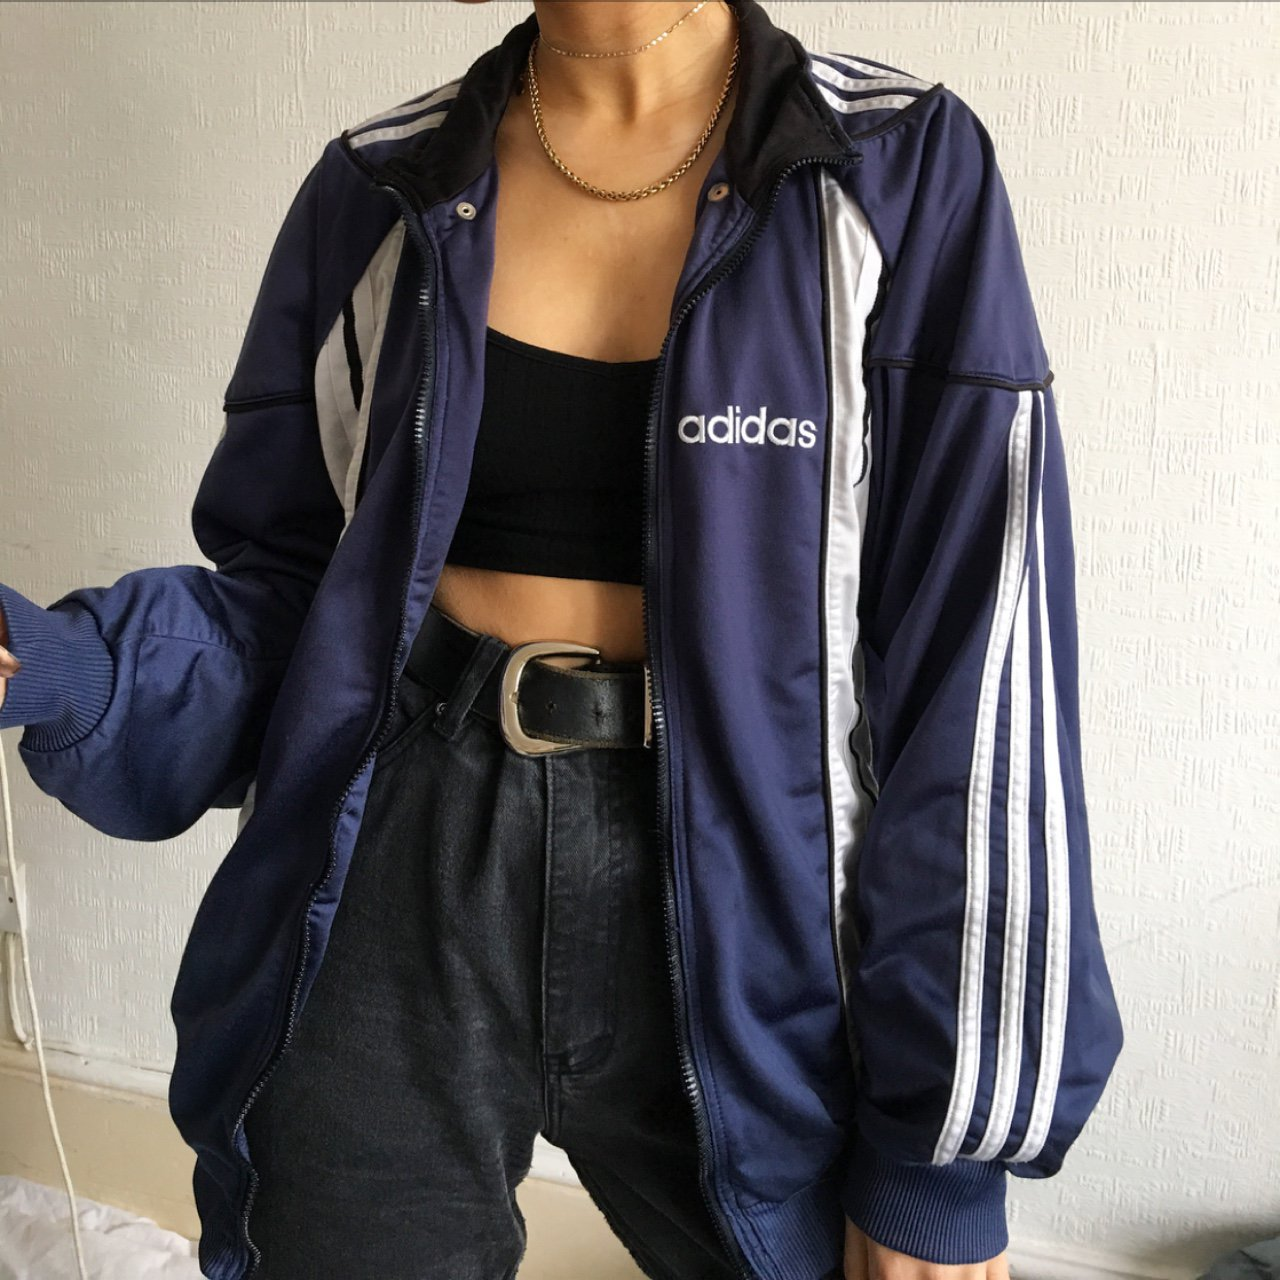 Vintage Adidas Jacket Very Good Condition 🌿 Follow